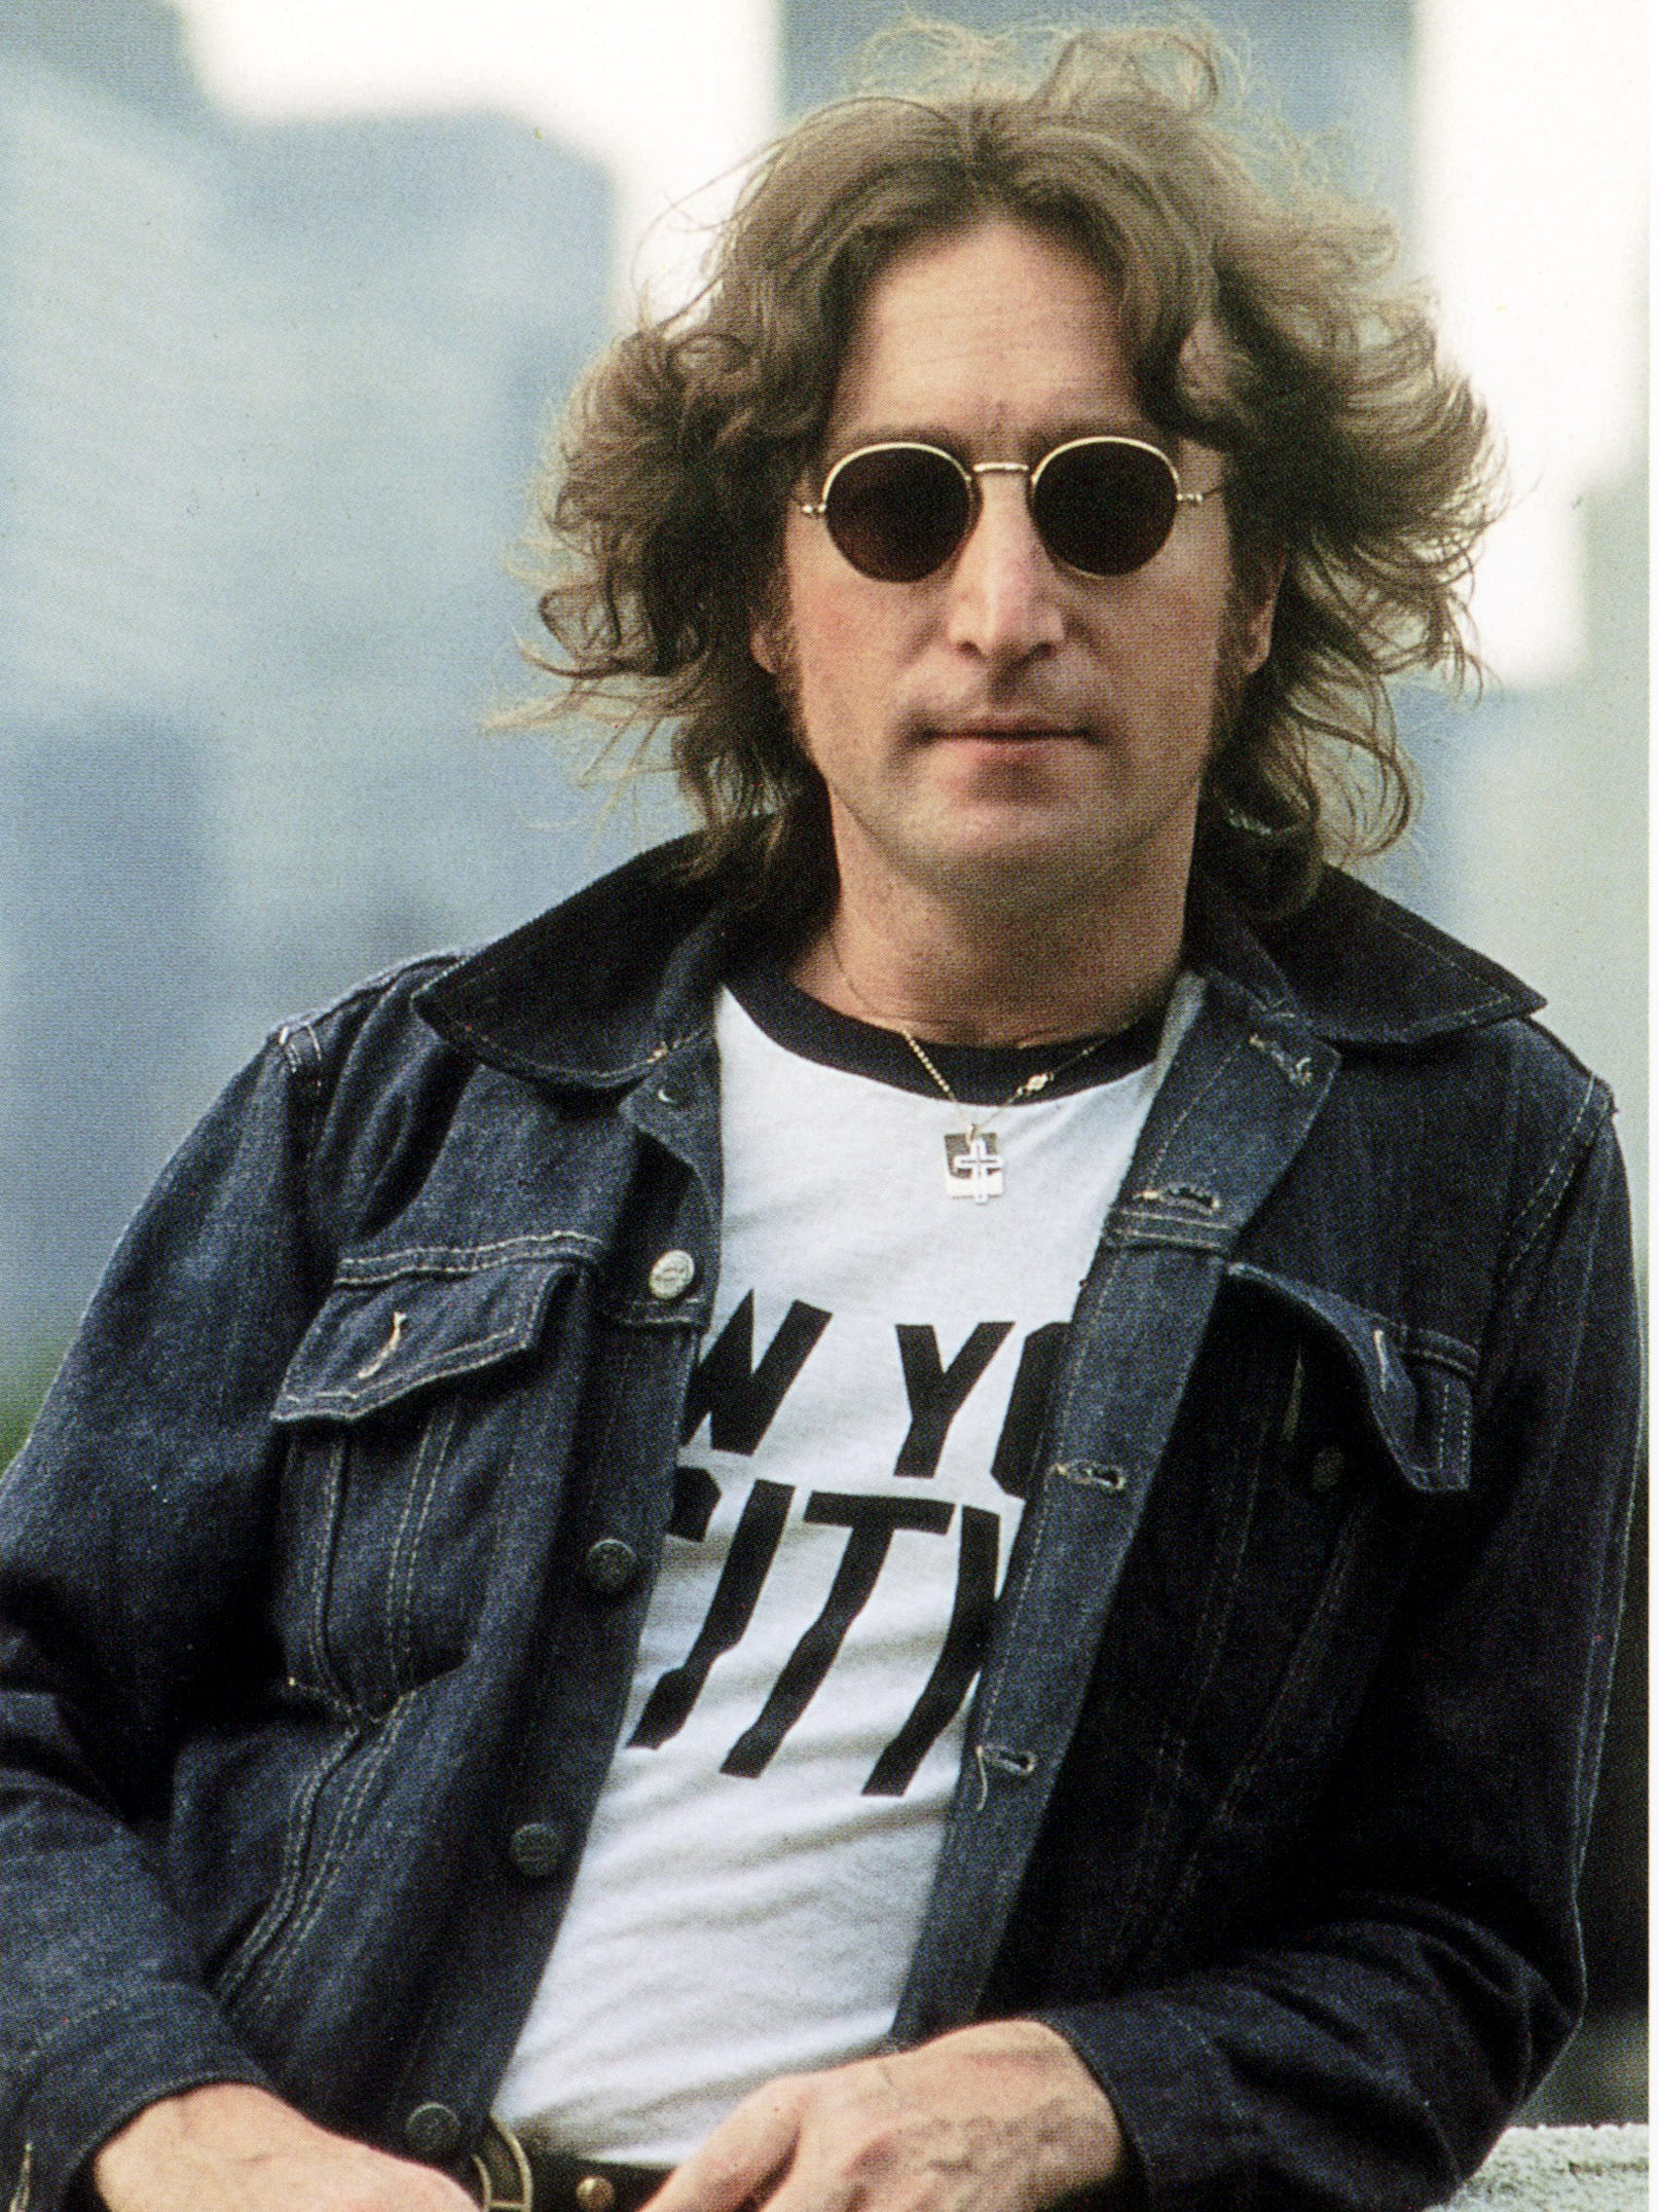 75 John Lennon quotes for his 75th birthday